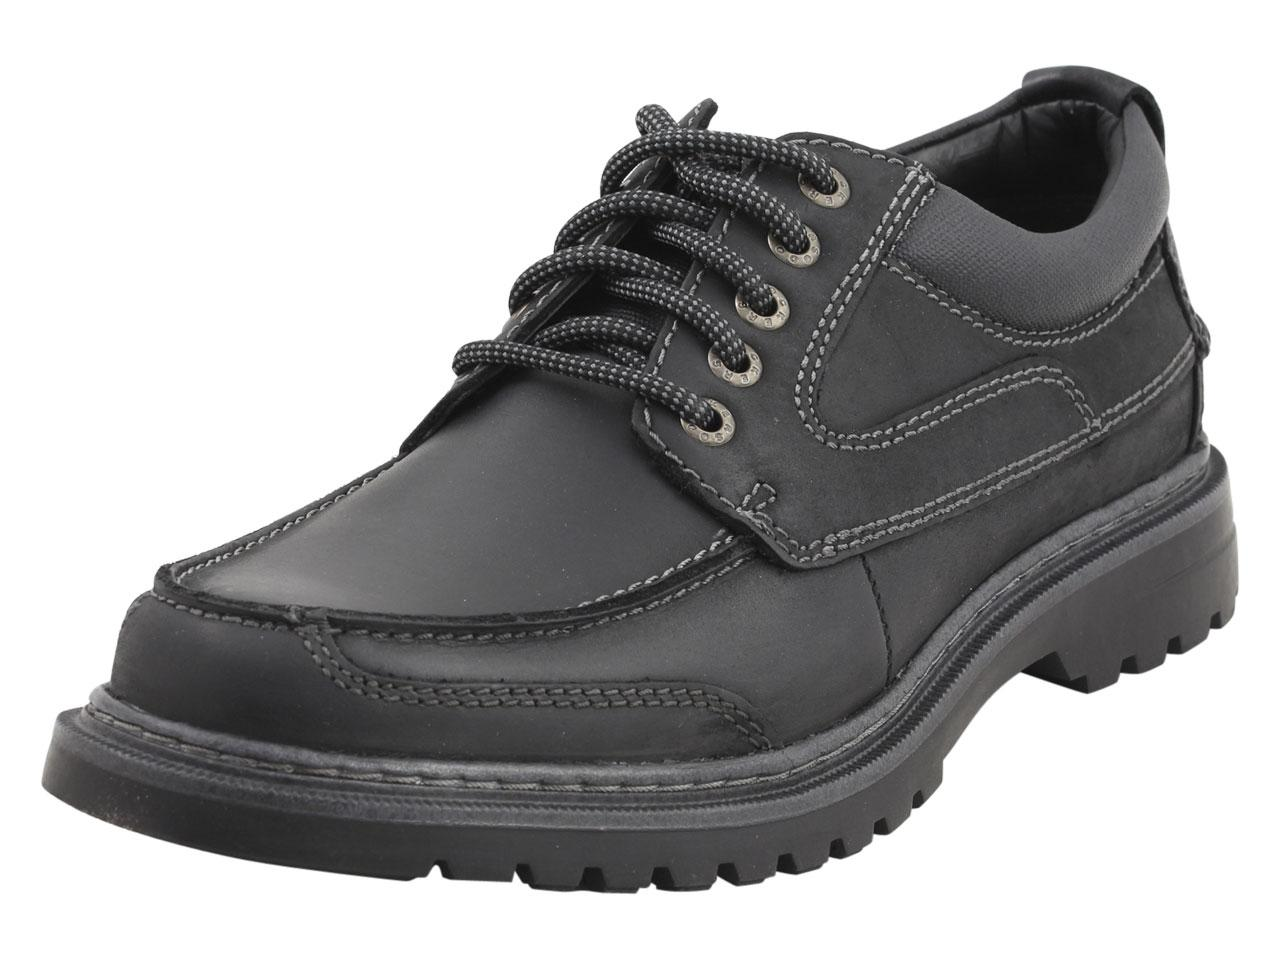 Image of Dockers Men's Overton Water Repellent Oxfords Shoes - Black - 13 D(M) US